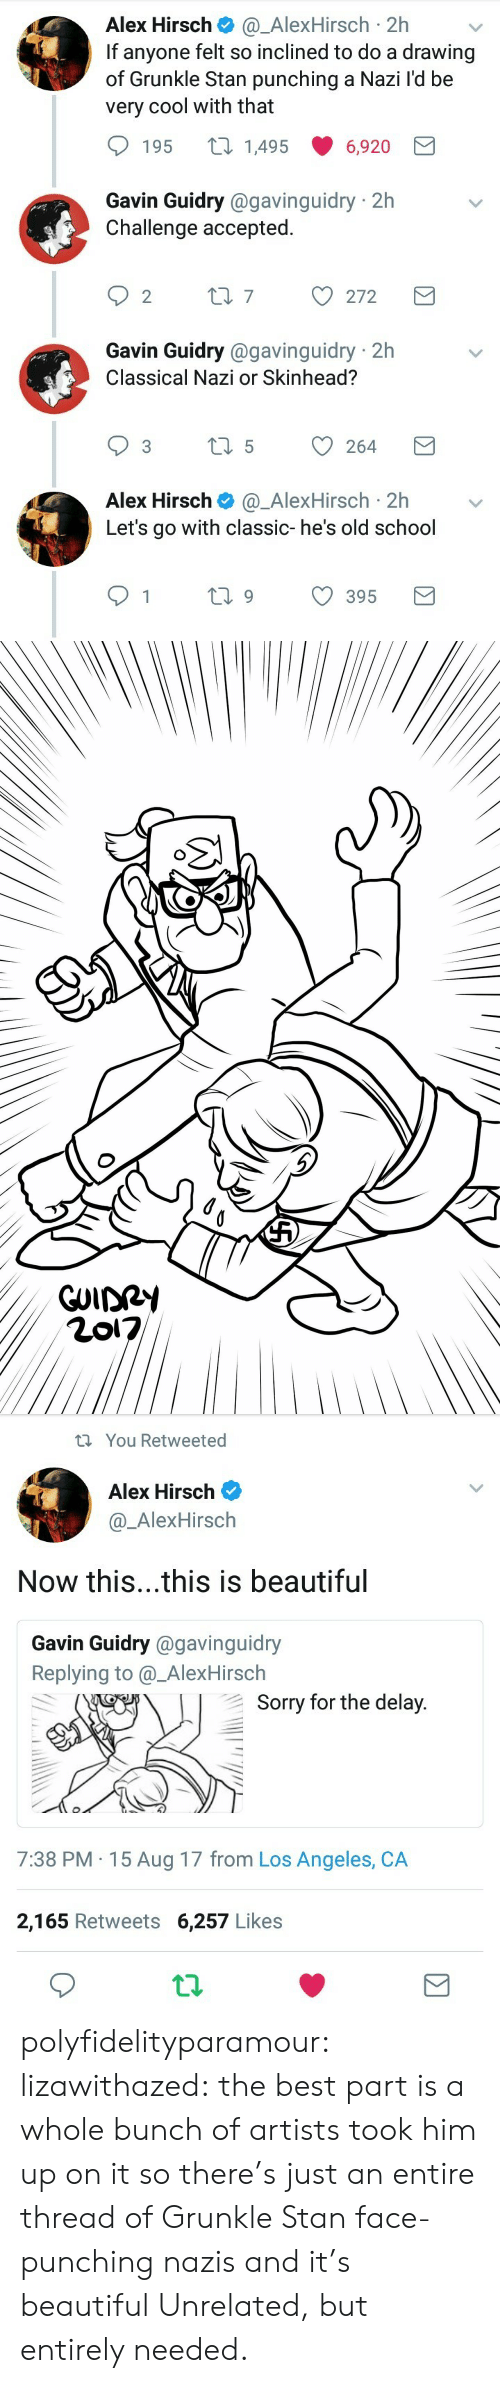 Beautiful, School, and Sorry: Alex Hirsch@_AlexHirsch 2h  If anyone felt so inclined to do a drawing  of Grunkle Stan punching a Nazi l'd be  very cool with that  195 t 14956,920  Gavin Guidry @gavinguidry 2h  Challenge accepted.  Gavin Guidry @gavinguidry 2h  Classical Nazi or Skinhead?  Alex Hirsch@_AlexHirsch 2hv  Let's go with classic- he's old school  1  ti9 395   You Retweeted  Alex Hirsch  @_AlexHirsch  Now this...this is beautiful  Gavin Guidry @gavinguidry  Replying to @_AlexHirsch  Sorry for the delav  7:38 PM 15 Aug 17 from Los Angeles, CA  2,165 Retweets 6,257 Likes polyfidelityparamour:  lizawithazed: the best part is a whole bunch of artists took him up on it so there's just an entire thread of Grunkle Stan face-punching nazis and it's beautiful  Unrelated, but entirely needed.